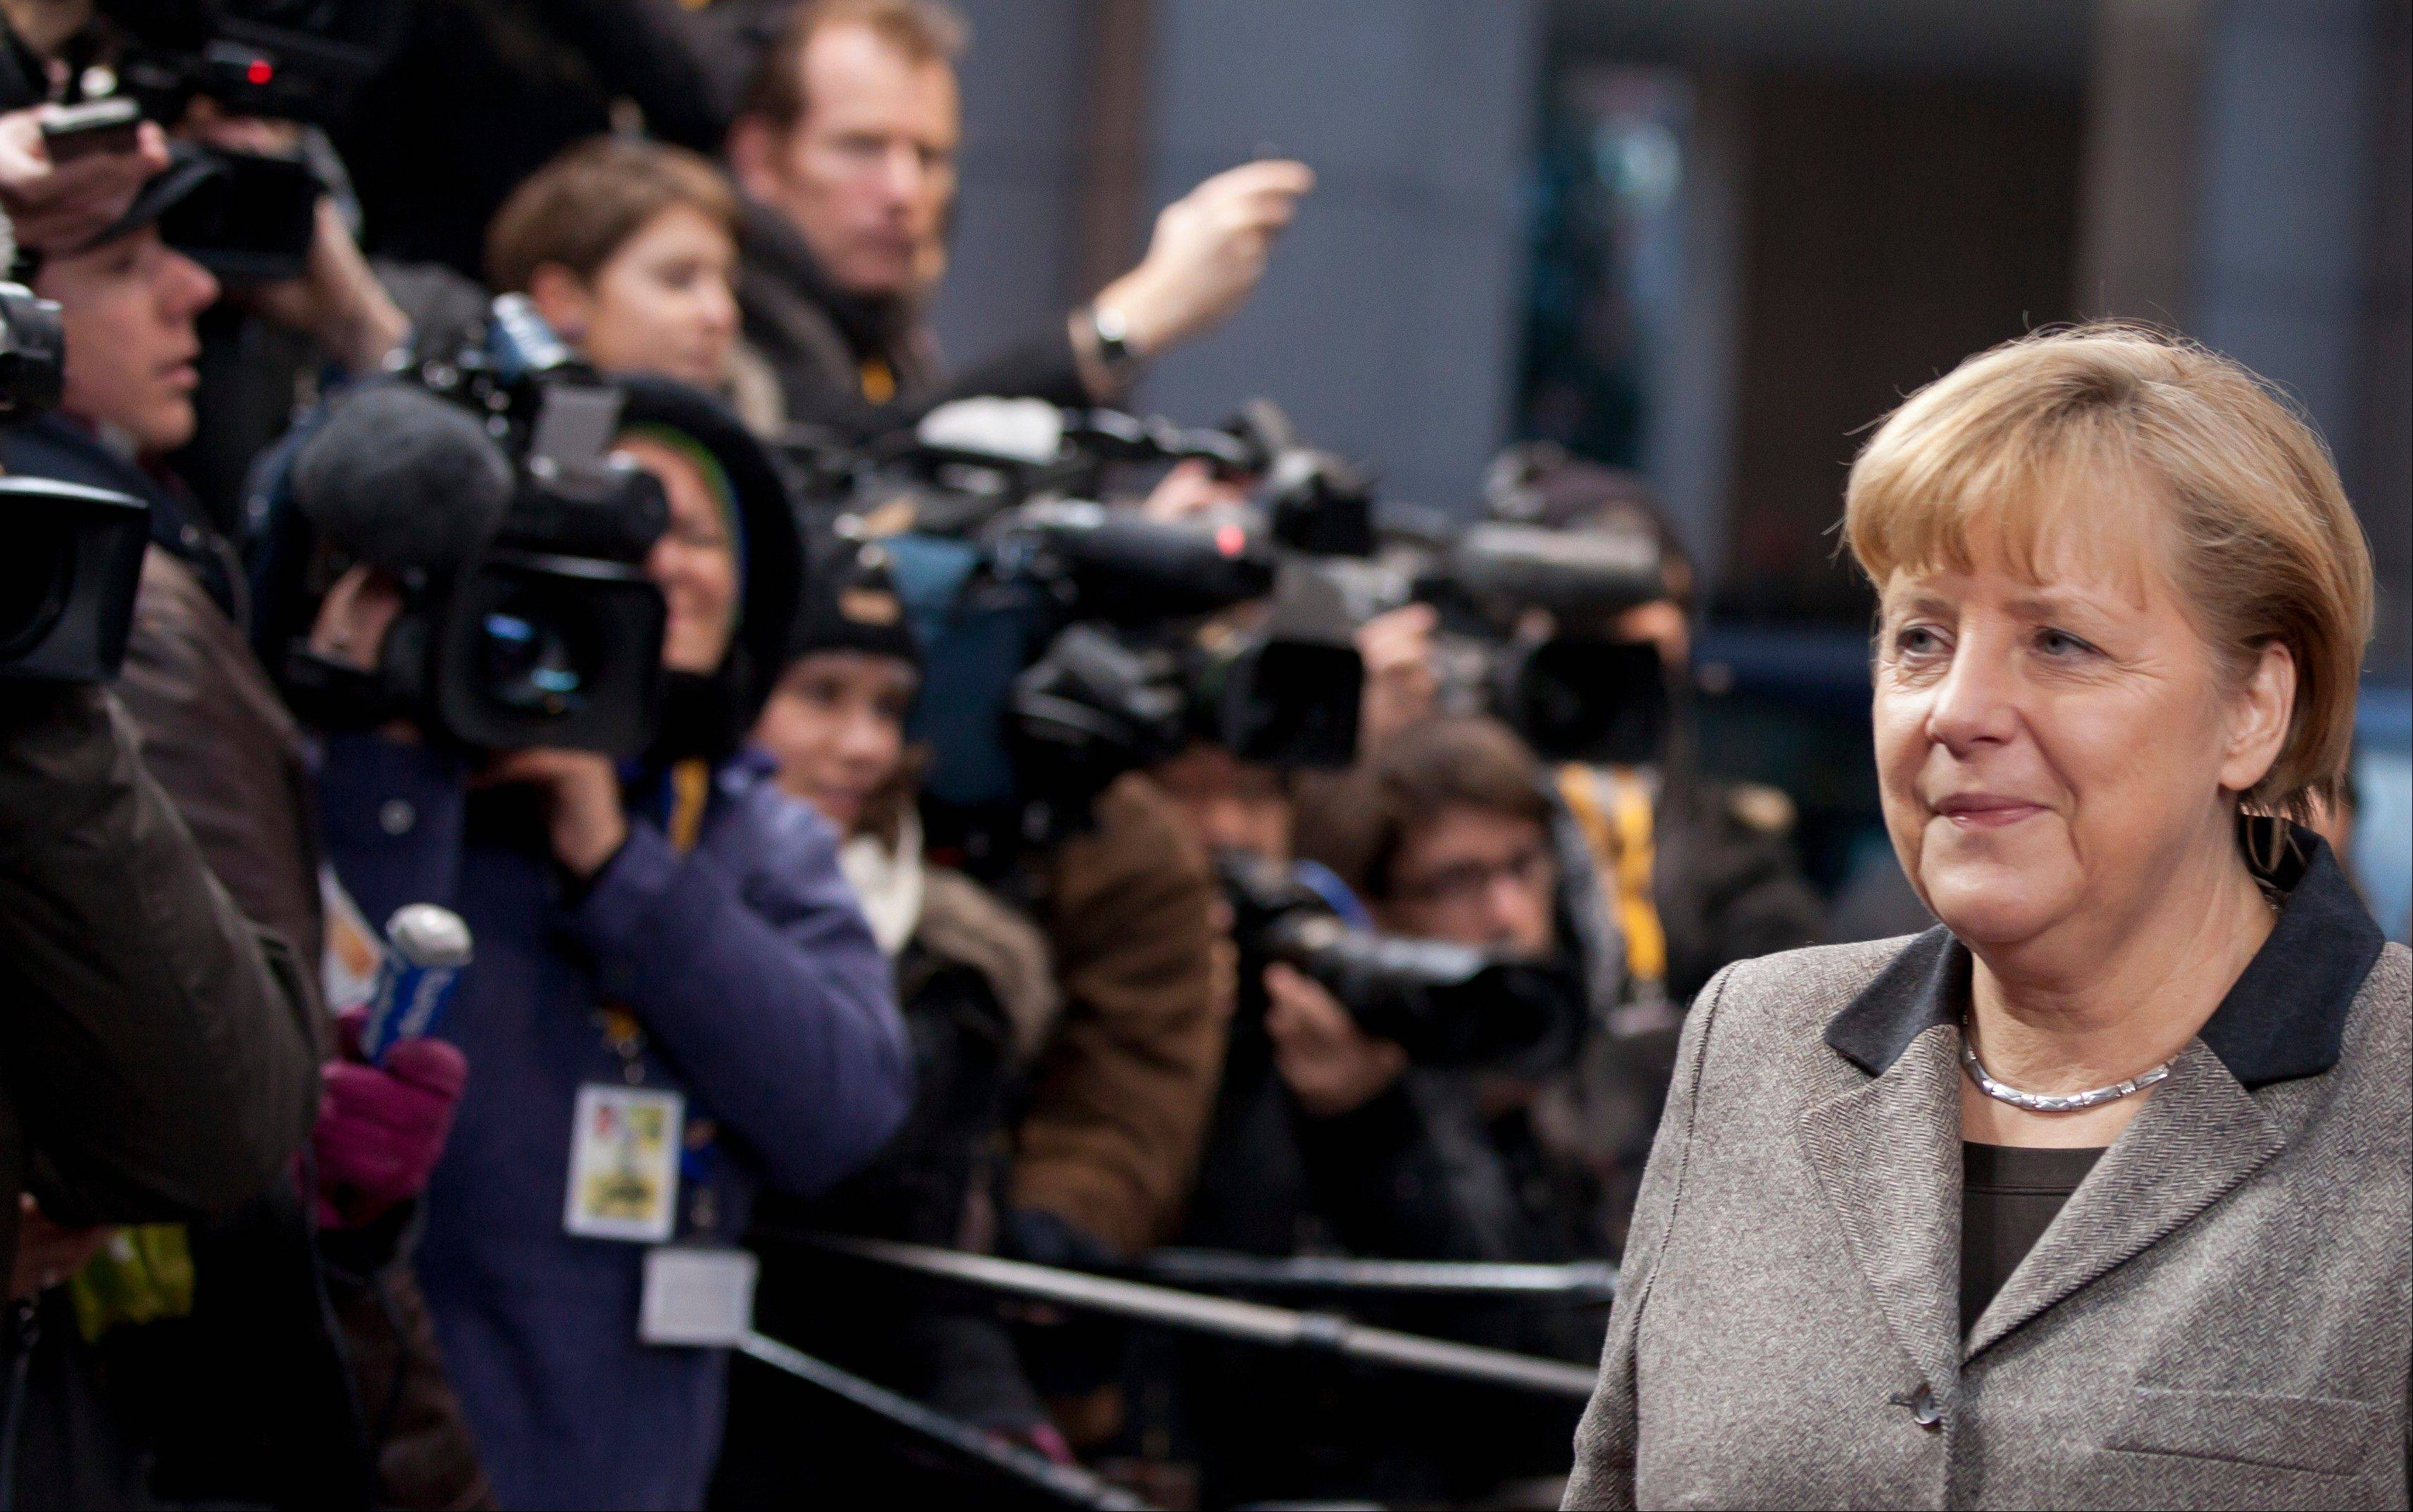 German Chancellor Angela Merkel arrives for an EU summit in Brussels Thursday. Member nations agreed on the foundation of a fully-fledged banking union and Greece's euro partners approved billions of euros in bailout loans that will prevent the nation from going bankrupt.